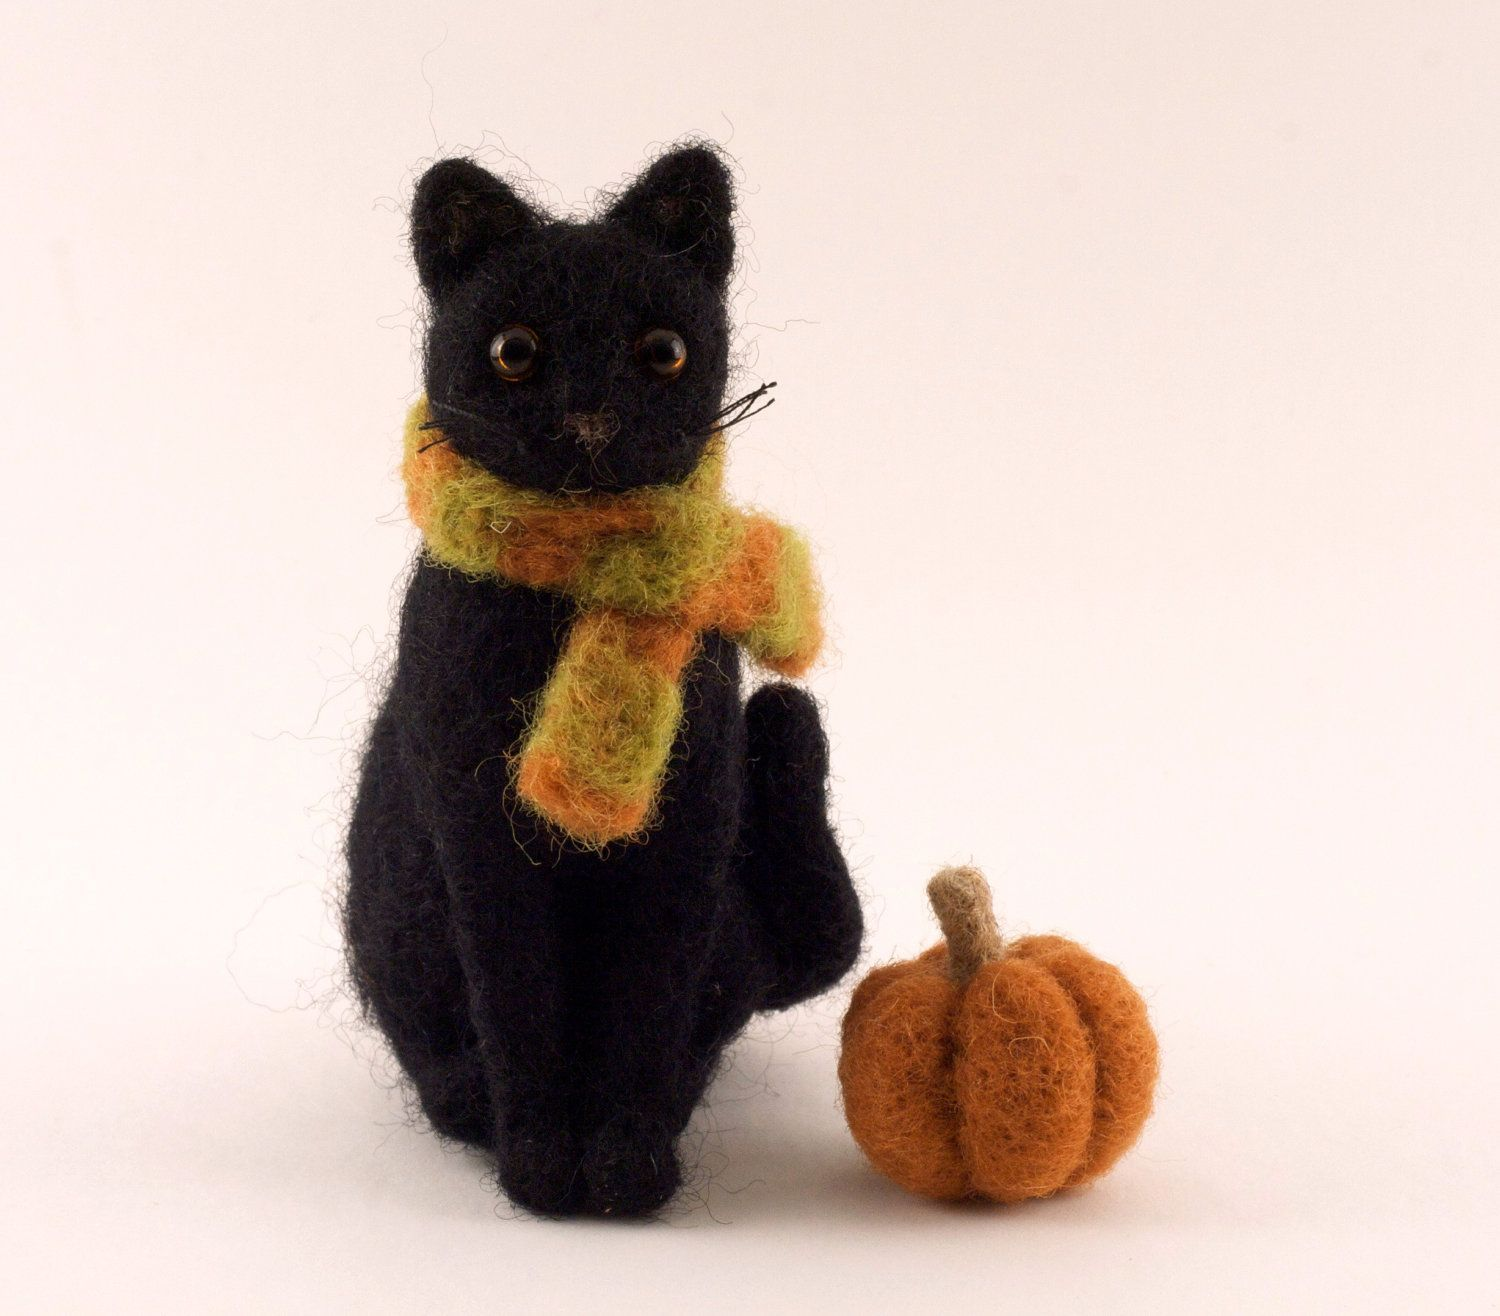 Halloween Needle Felted Black Cat with Pumpkin and Scarf